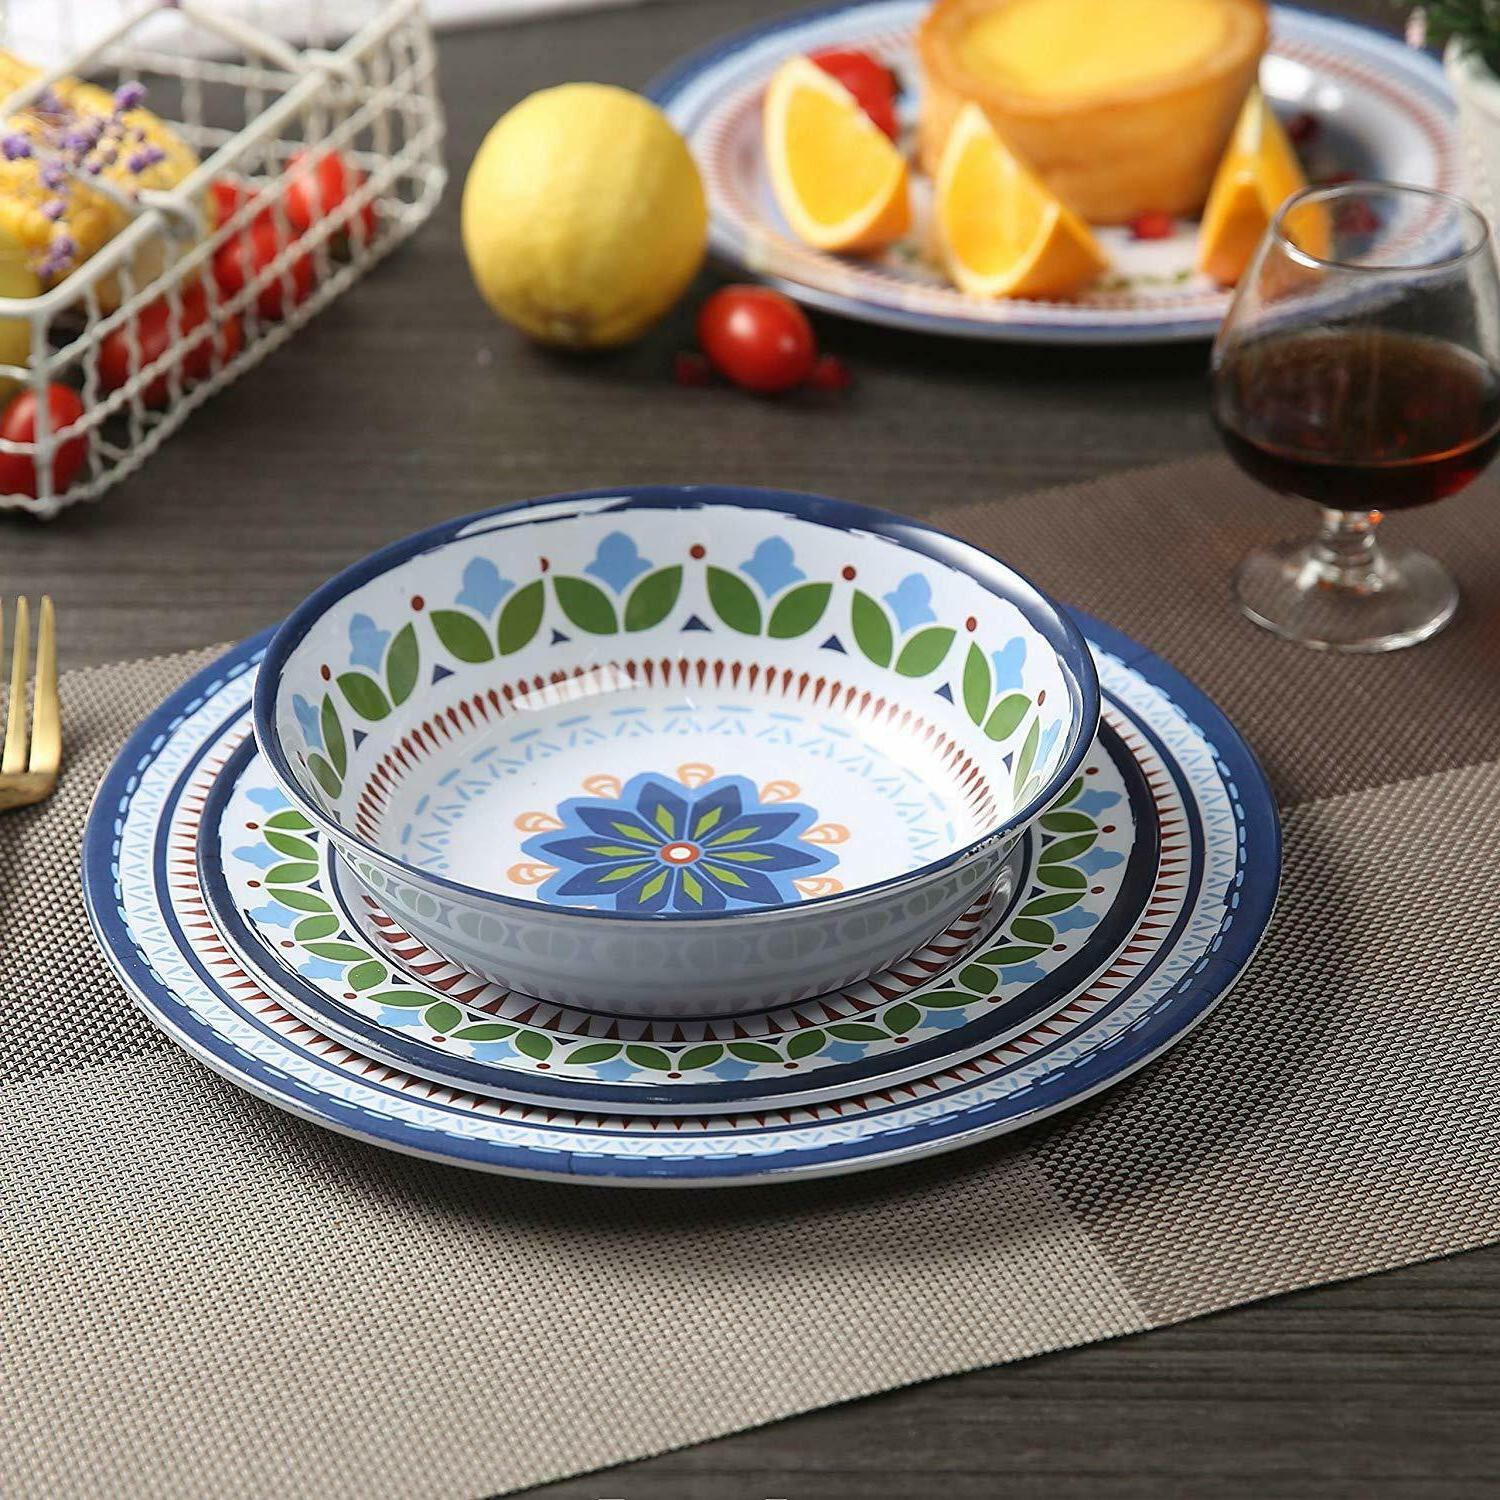 12 Pcs  Dinnerware Set - Rustic Plates and bowls Set for Cam